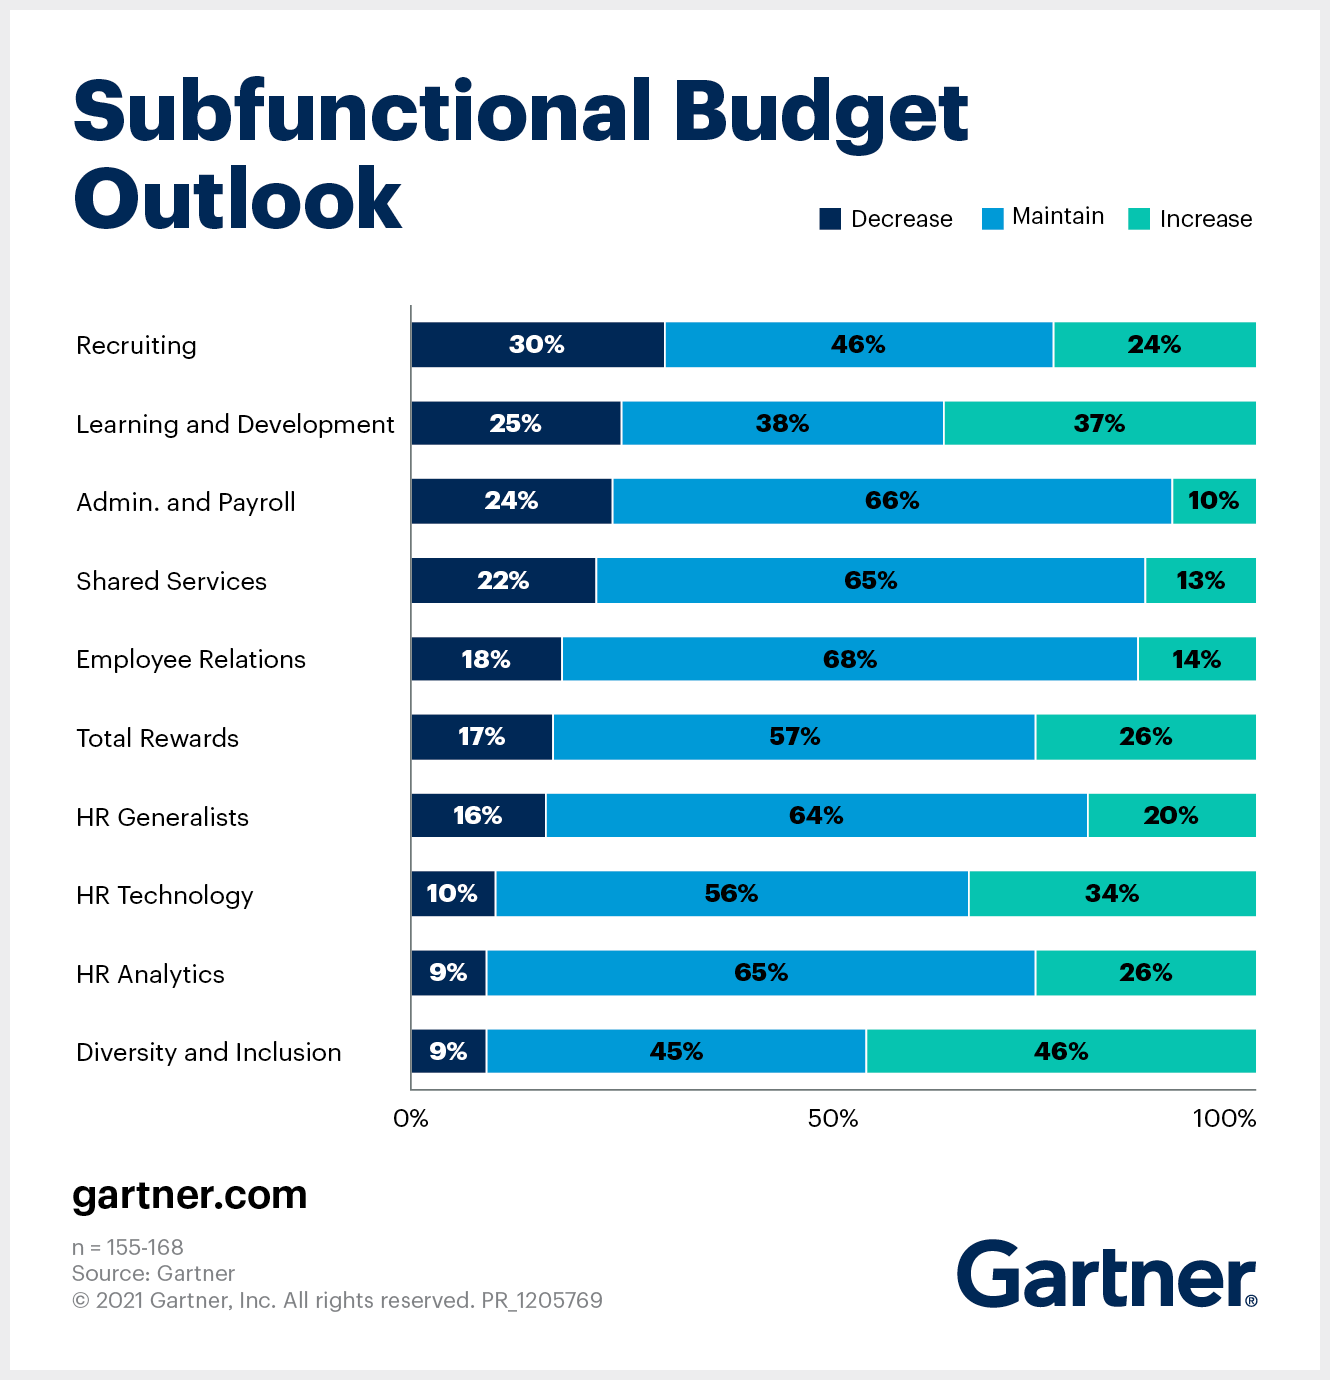 Subfunctional HR Function Budget Outlook